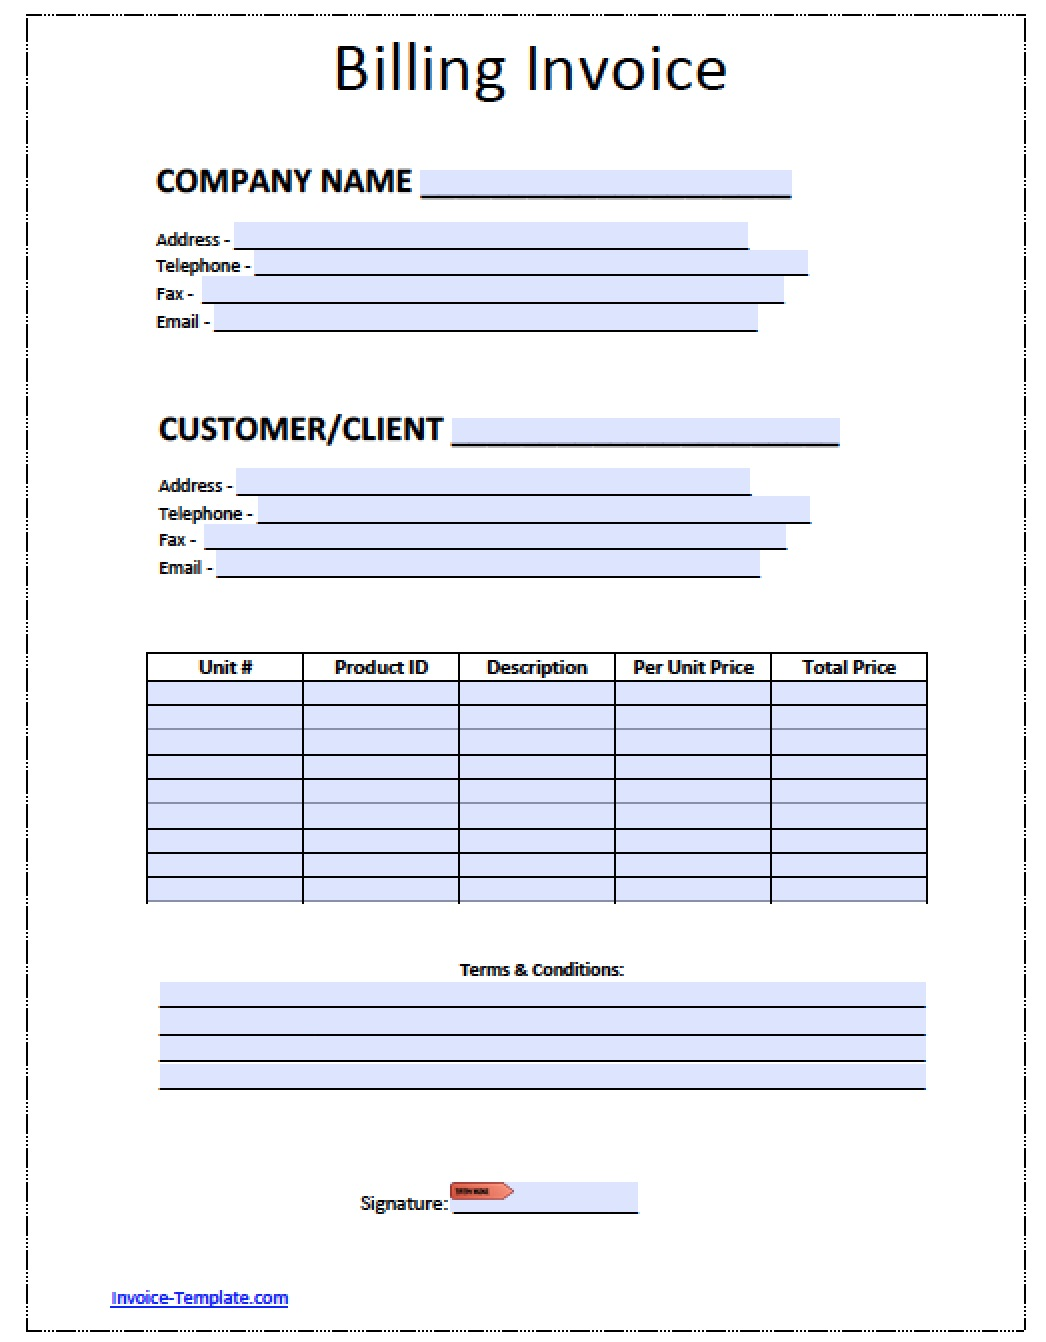 Reliefworkersus  Sweet Billing Invoice Invoices Faq U Cloudflare Support Billing  With Handsome Free Billing Invoice Template  Excel  Pdf  Word Doc  Billing With Lovely Pi Purchase Invoice Also Free Email Invoice Template In Addition Invoice Packing List And Factor Invoice As Well As Electronic Invoicing System Additionally Vat Tax Invoice Format In Excel From Happytomco With Reliefworkersus  Handsome Billing Invoice Invoices Faq U Cloudflare Support Billing  With Lovely Free Billing Invoice Template  Excel  Pdf  Word Doc  Billing And Sweet Pi Purchase Invoice Also Free Email Invoice Template In Addition Invoice Packing List From Happytomco